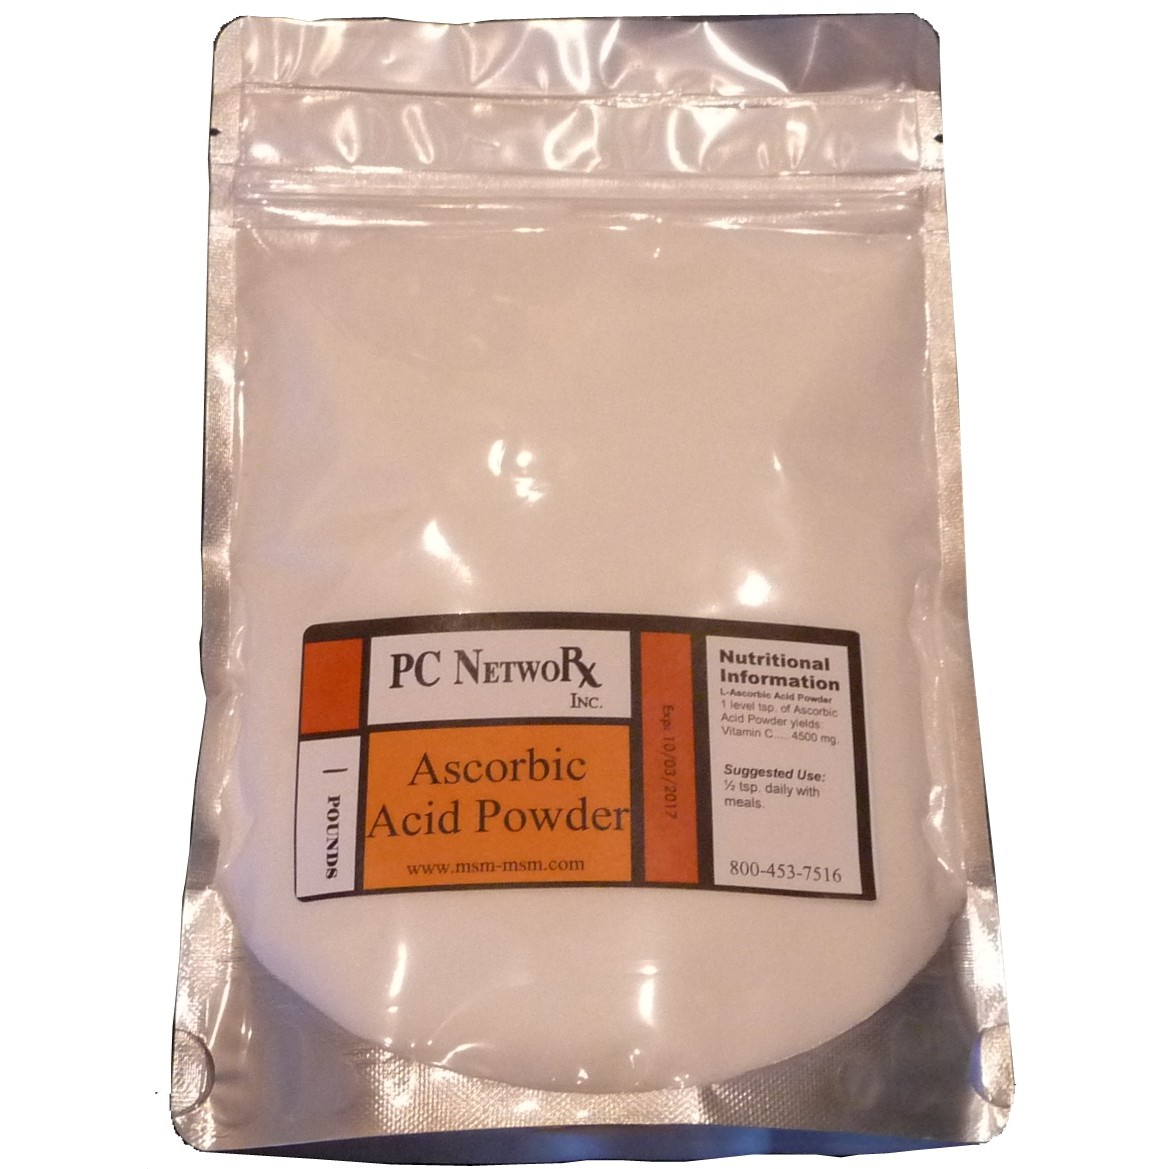 1 lb Bulk Ascorbic Acid Powder